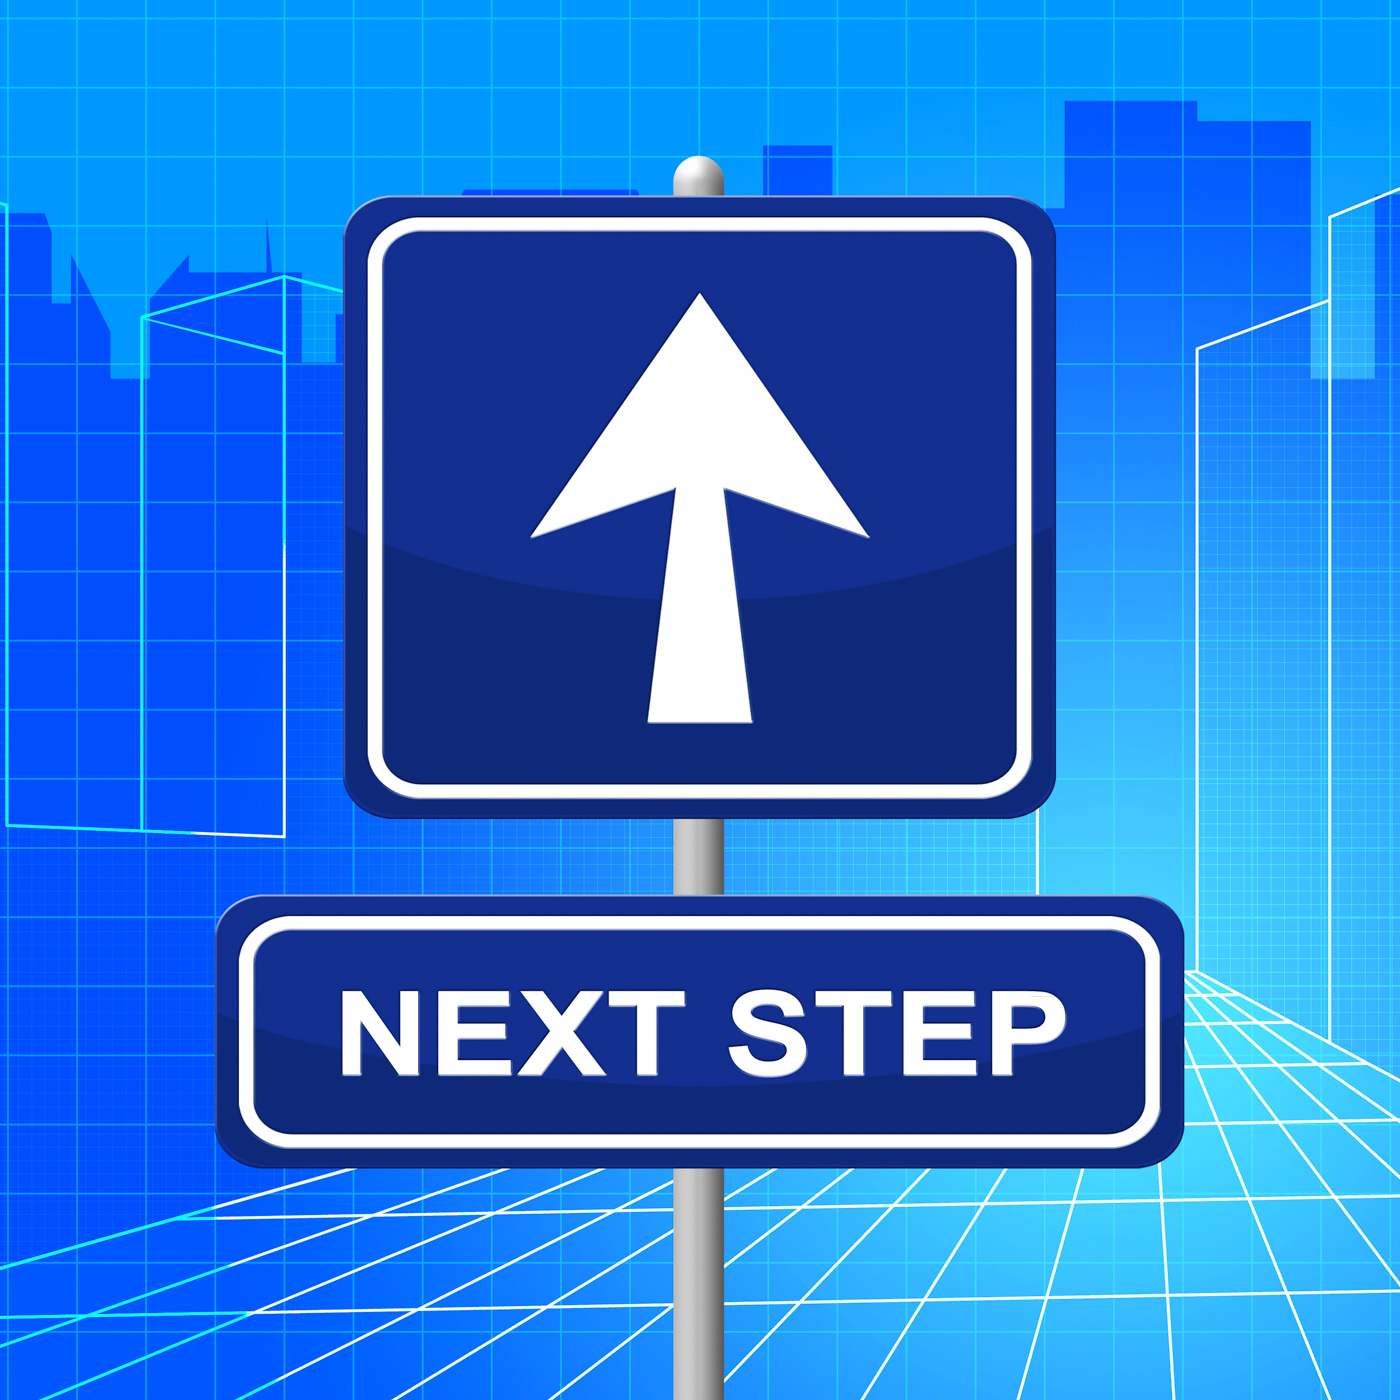 Next Step Represents Arrow Display And Progression, Achievement, Message, Signboard, Sign, HQ Photo